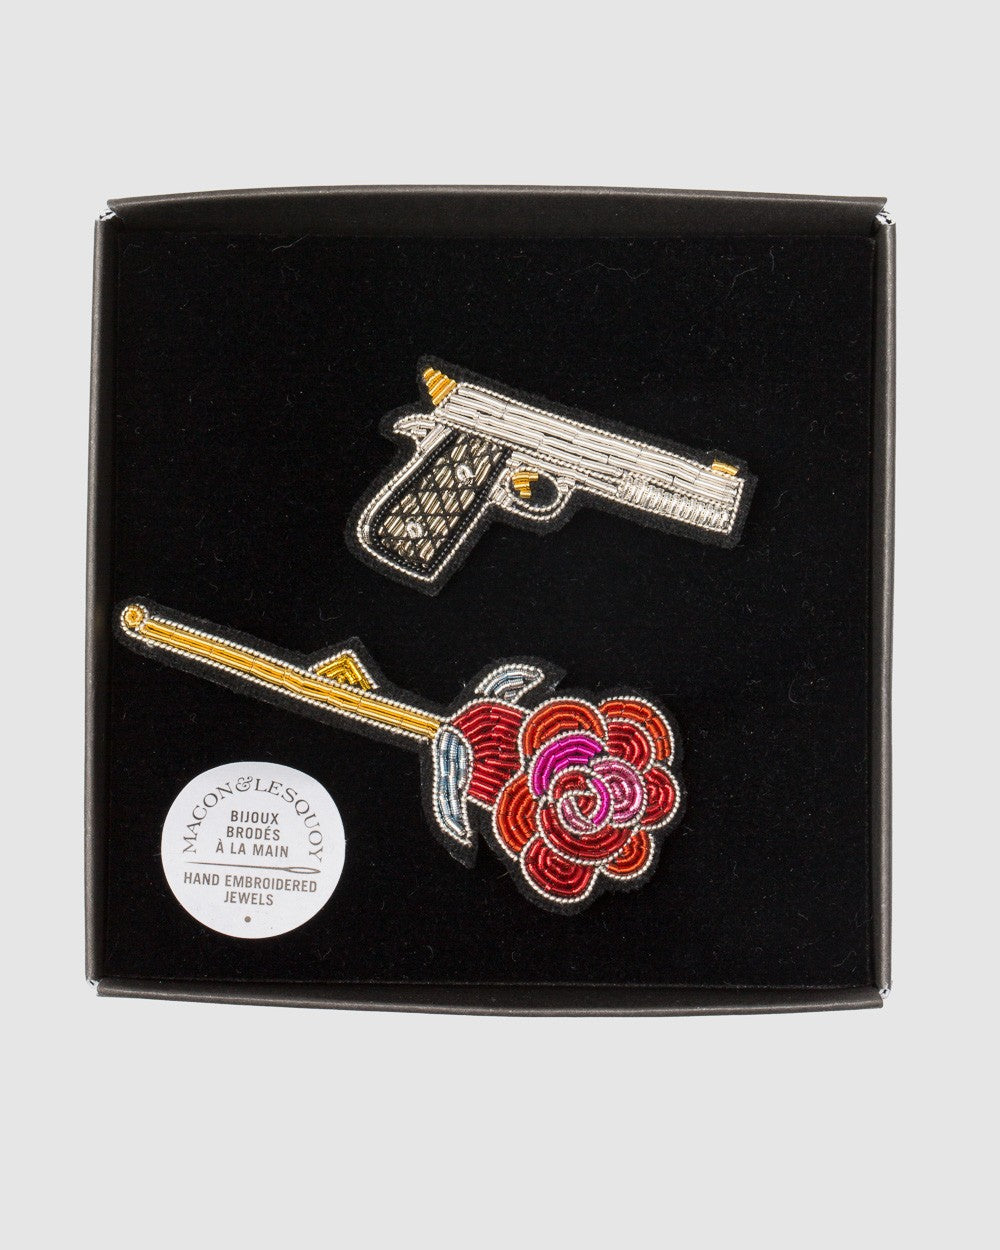 Macon Lesquoy Stickbroschen Set Of 2 Gun And Rose - Detail Image 1